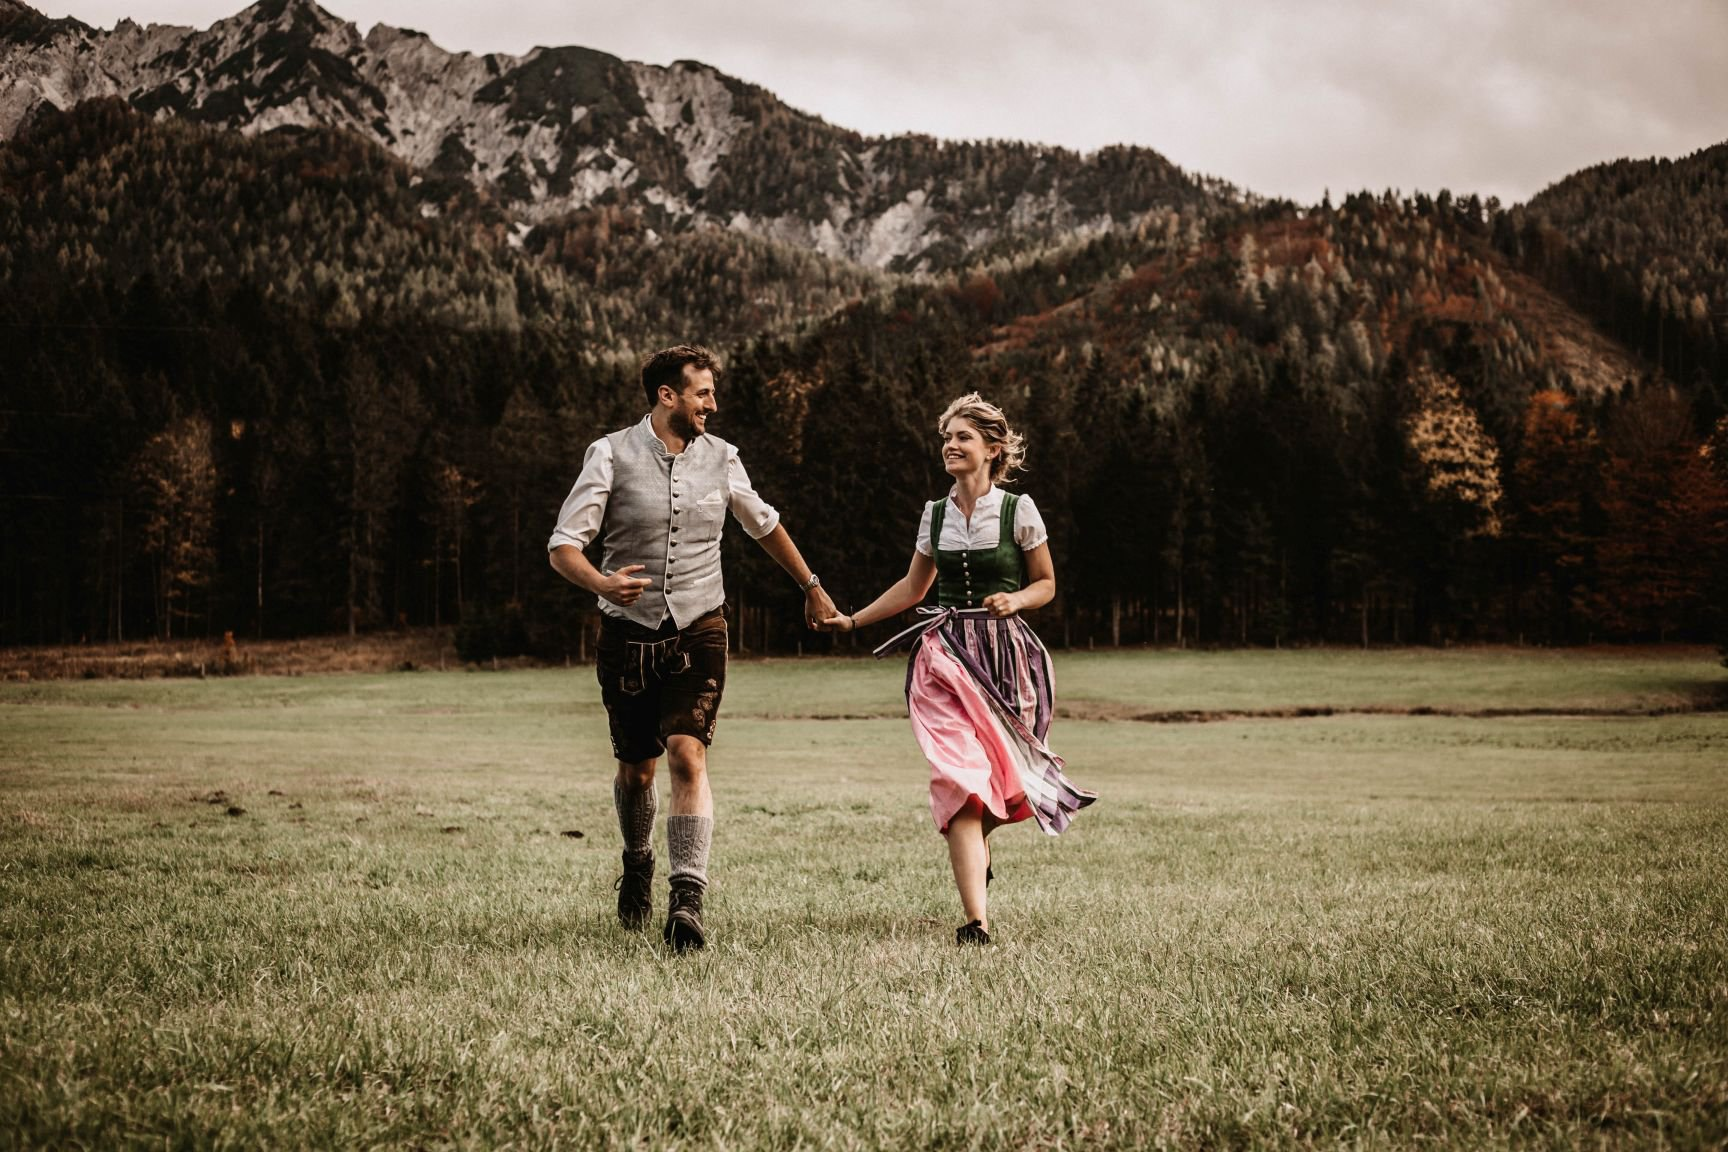 Lotte-Barry-photosession-in-Mountain-32-3